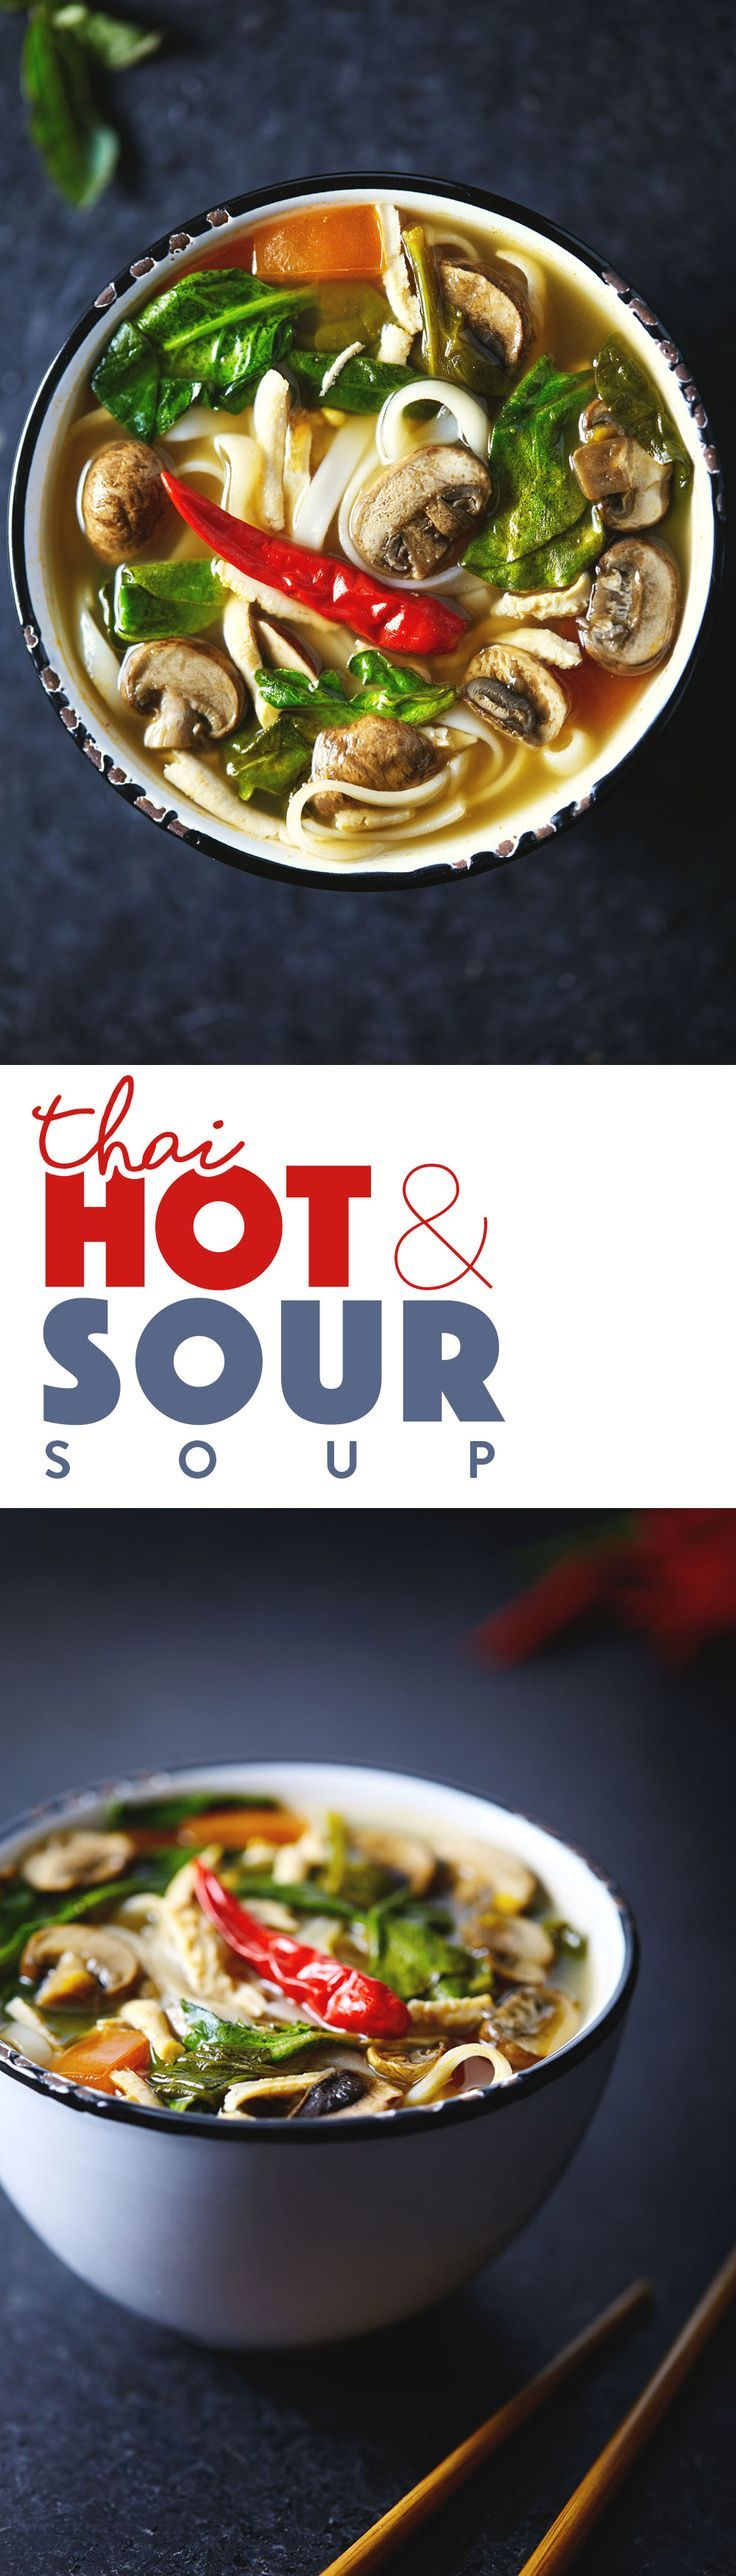 A soup inspired by Thai Tom Yum. This vegan version is infused with the flavors of fresh lemongrass, ginger and spicy thai chili peppers. Vegan & Gluten Free.